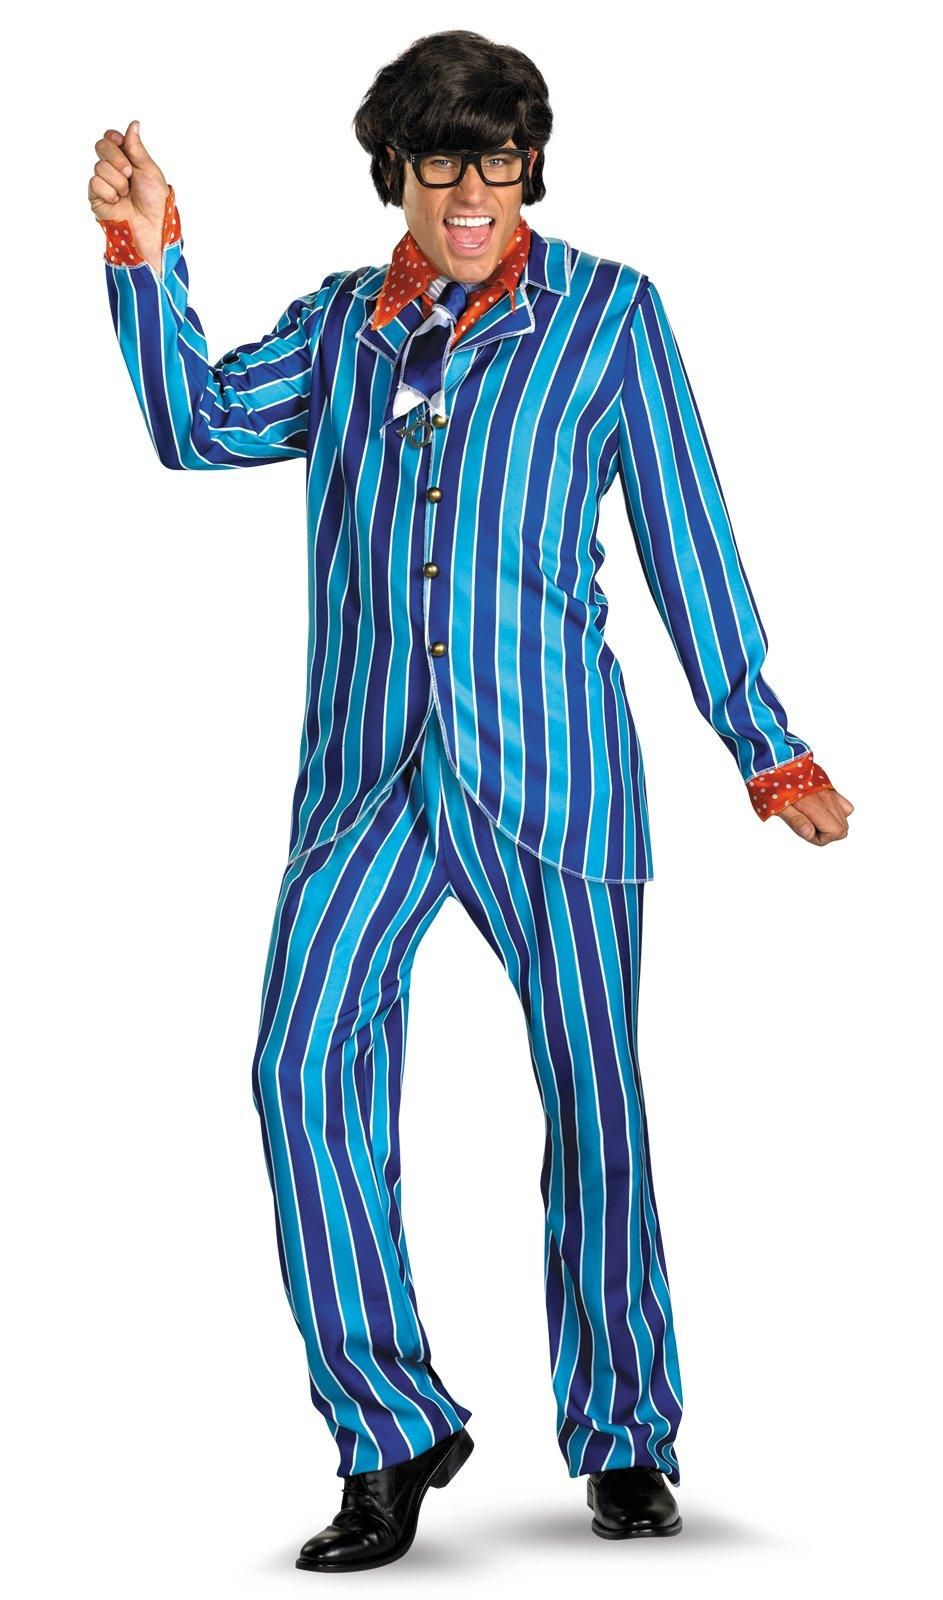 b135c95b81e8 Austin Powers Carnaby Street Blue Suit Deluxe Adult Costume from  Buycostumes.com